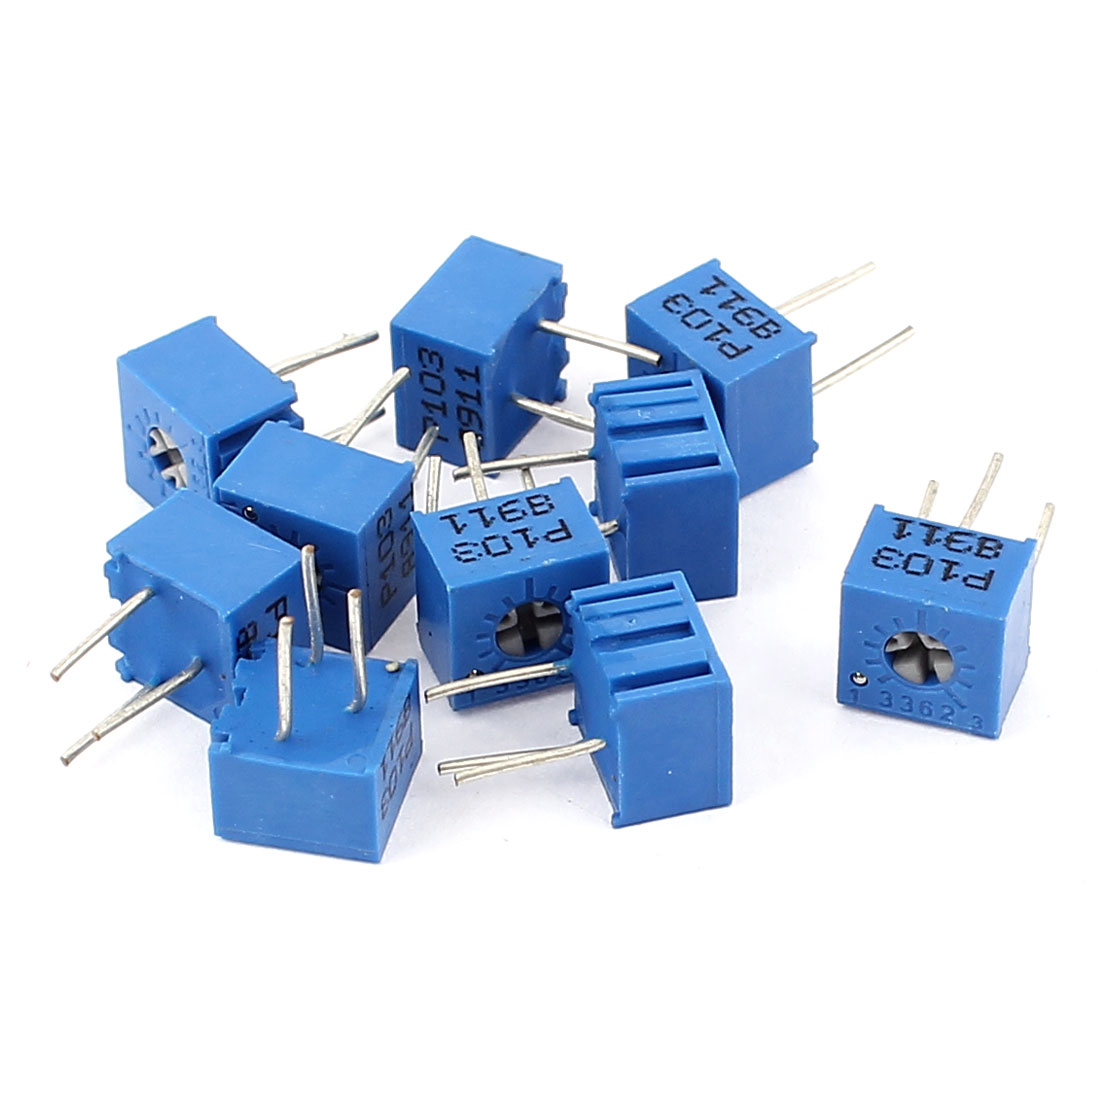 10Pcs Adjustable Potentiometer Trimmer Variable Resistor 3362P-103